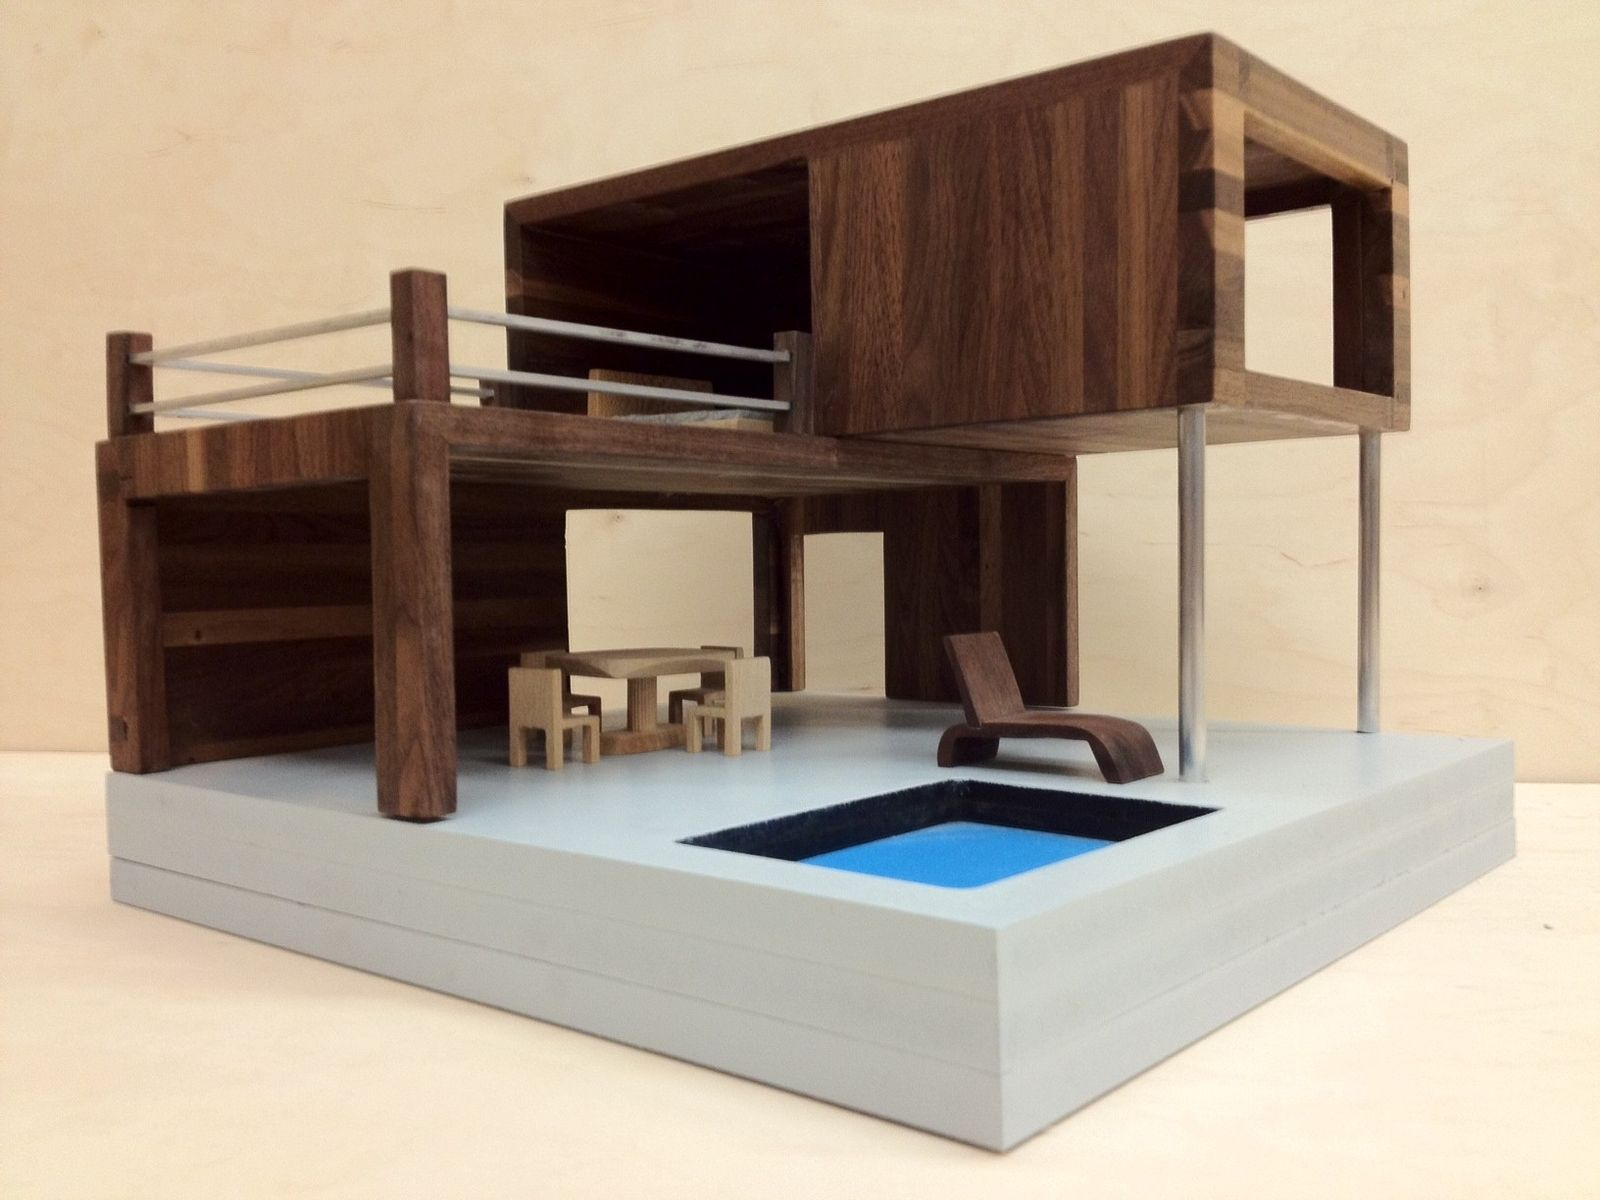 Hand Made Modern Doll House By New8th Furniture